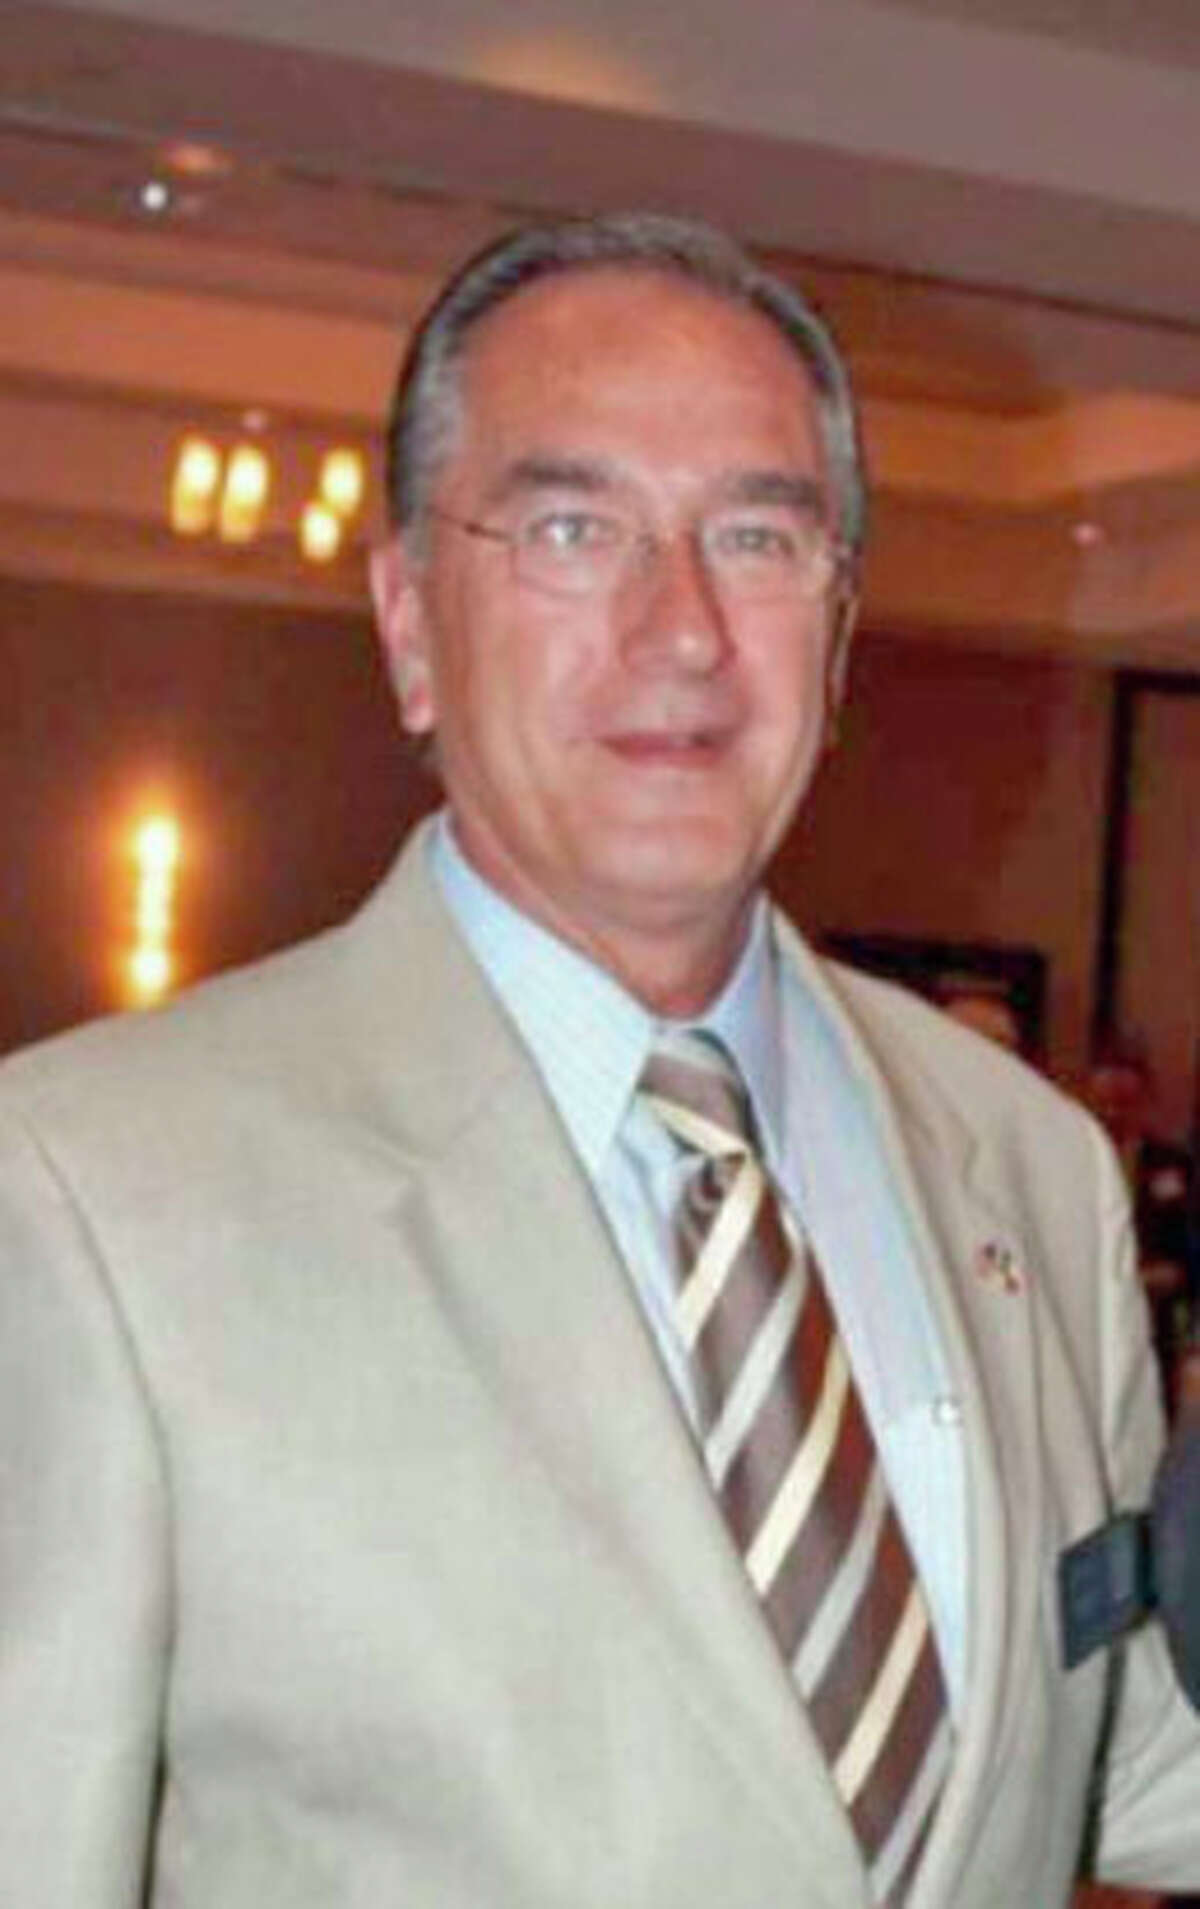 Pearland City Council member Woody Owens defeated Dalia Kasseb for the new City Council Position 7.